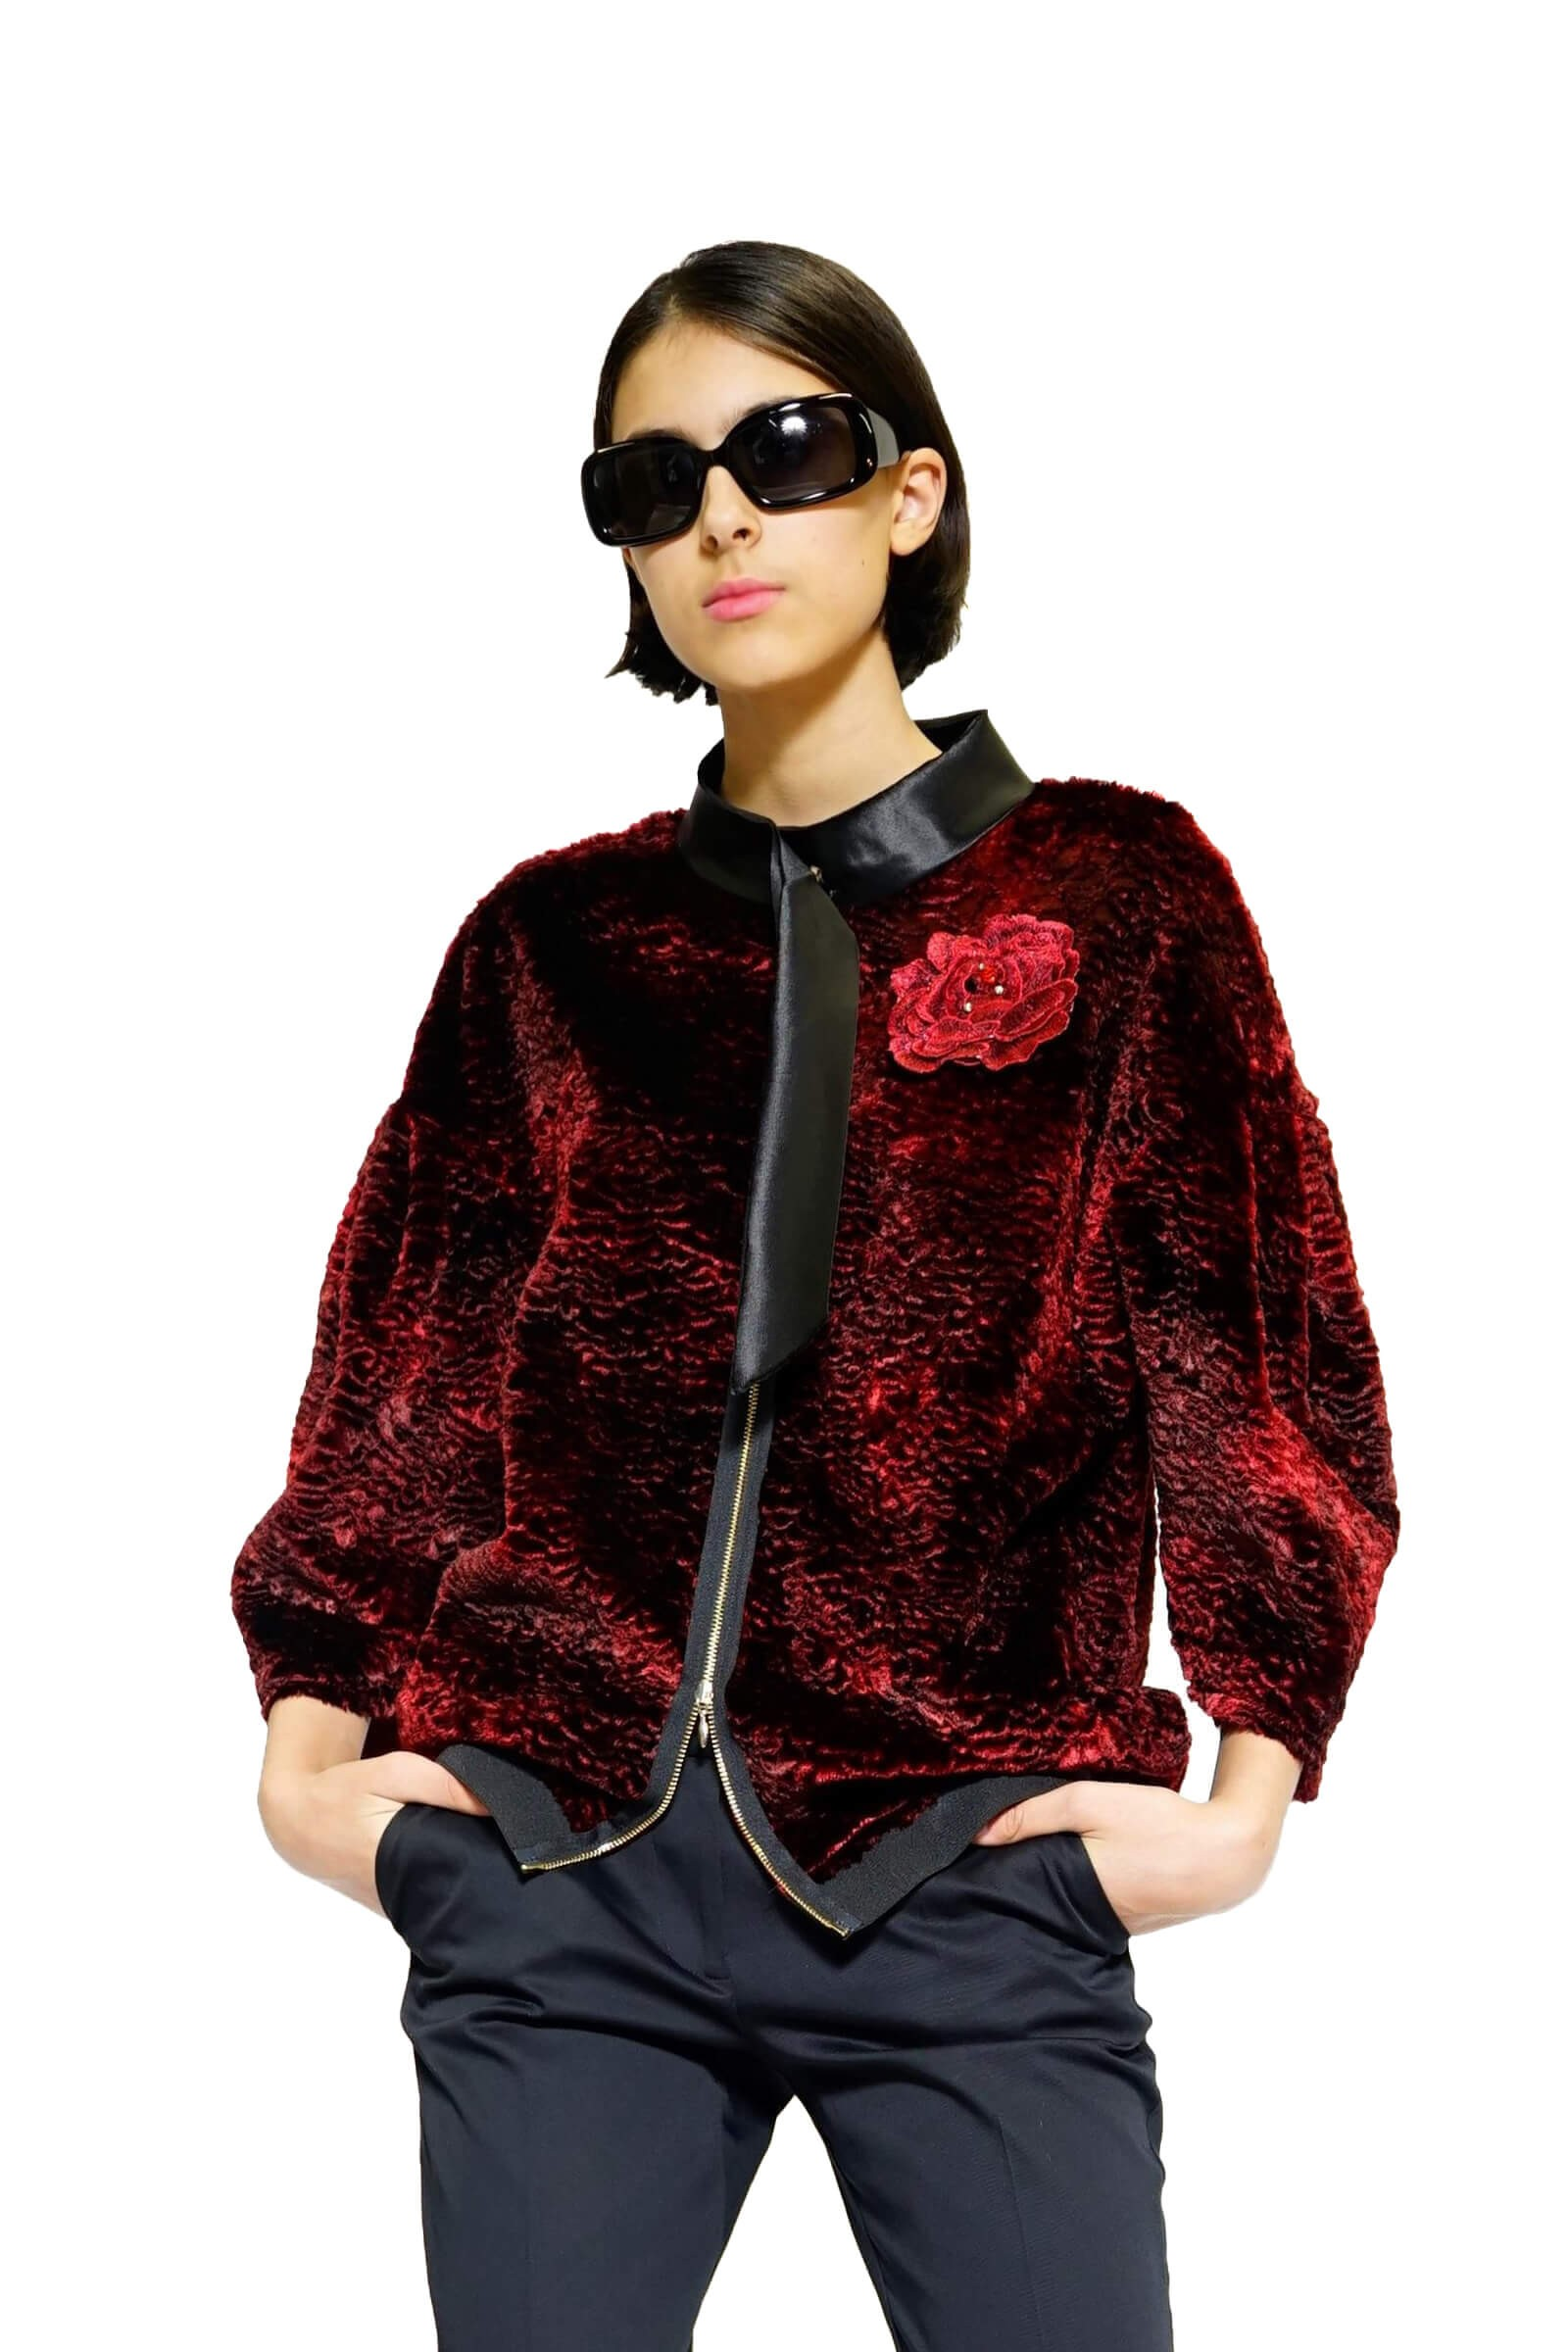 Red jacket with a rose brooch